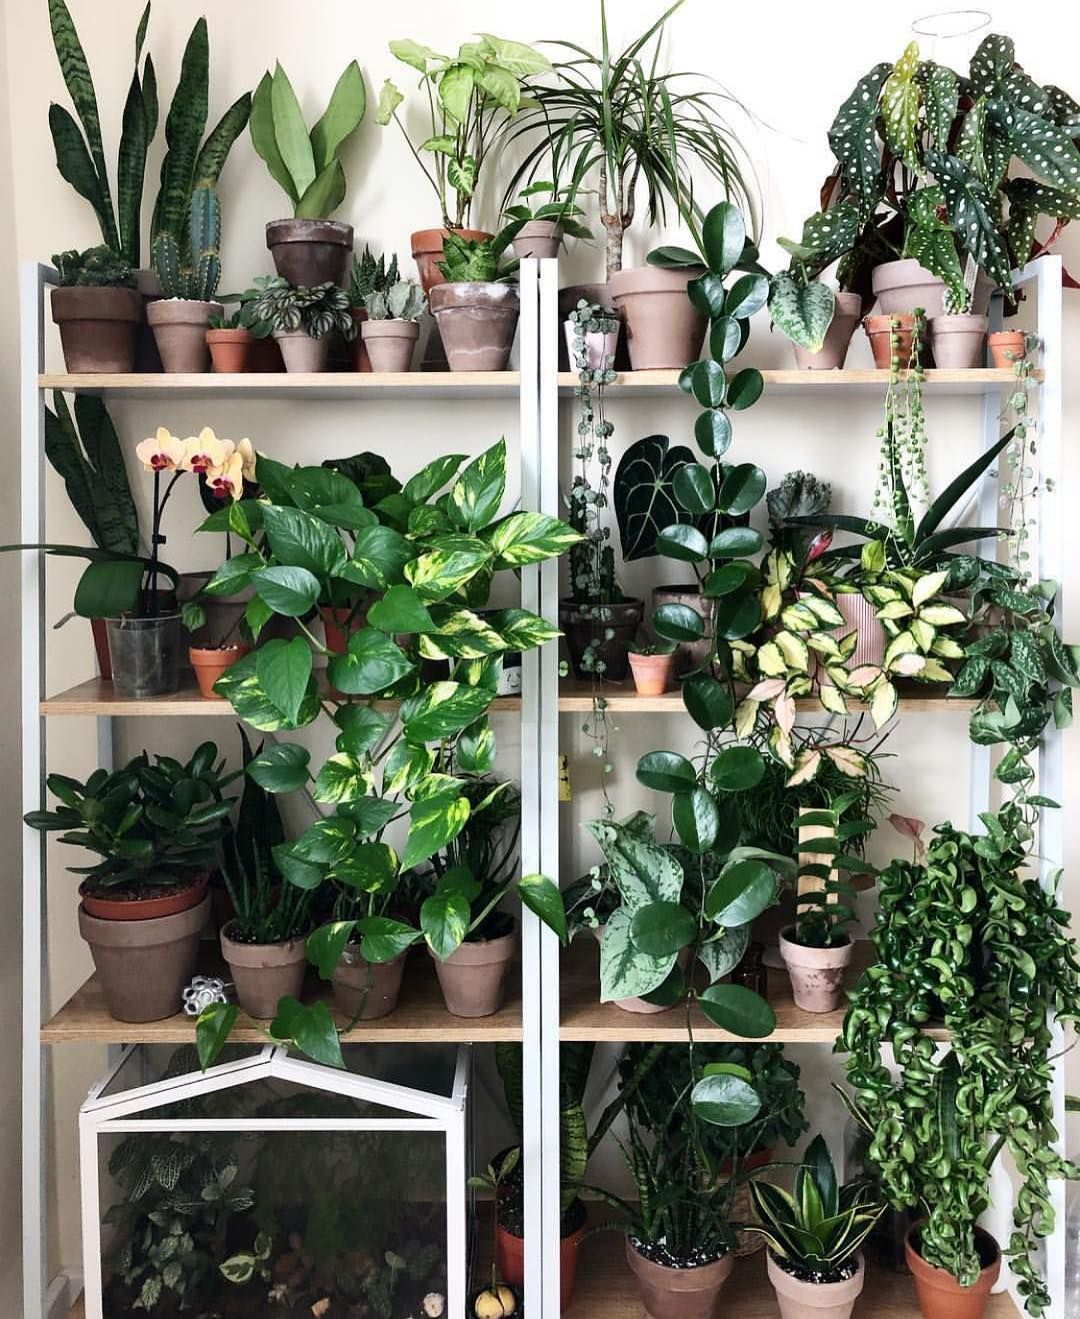 House Plants For Shady Rooms: In The Instance, In The Event The Room Proved To Be A